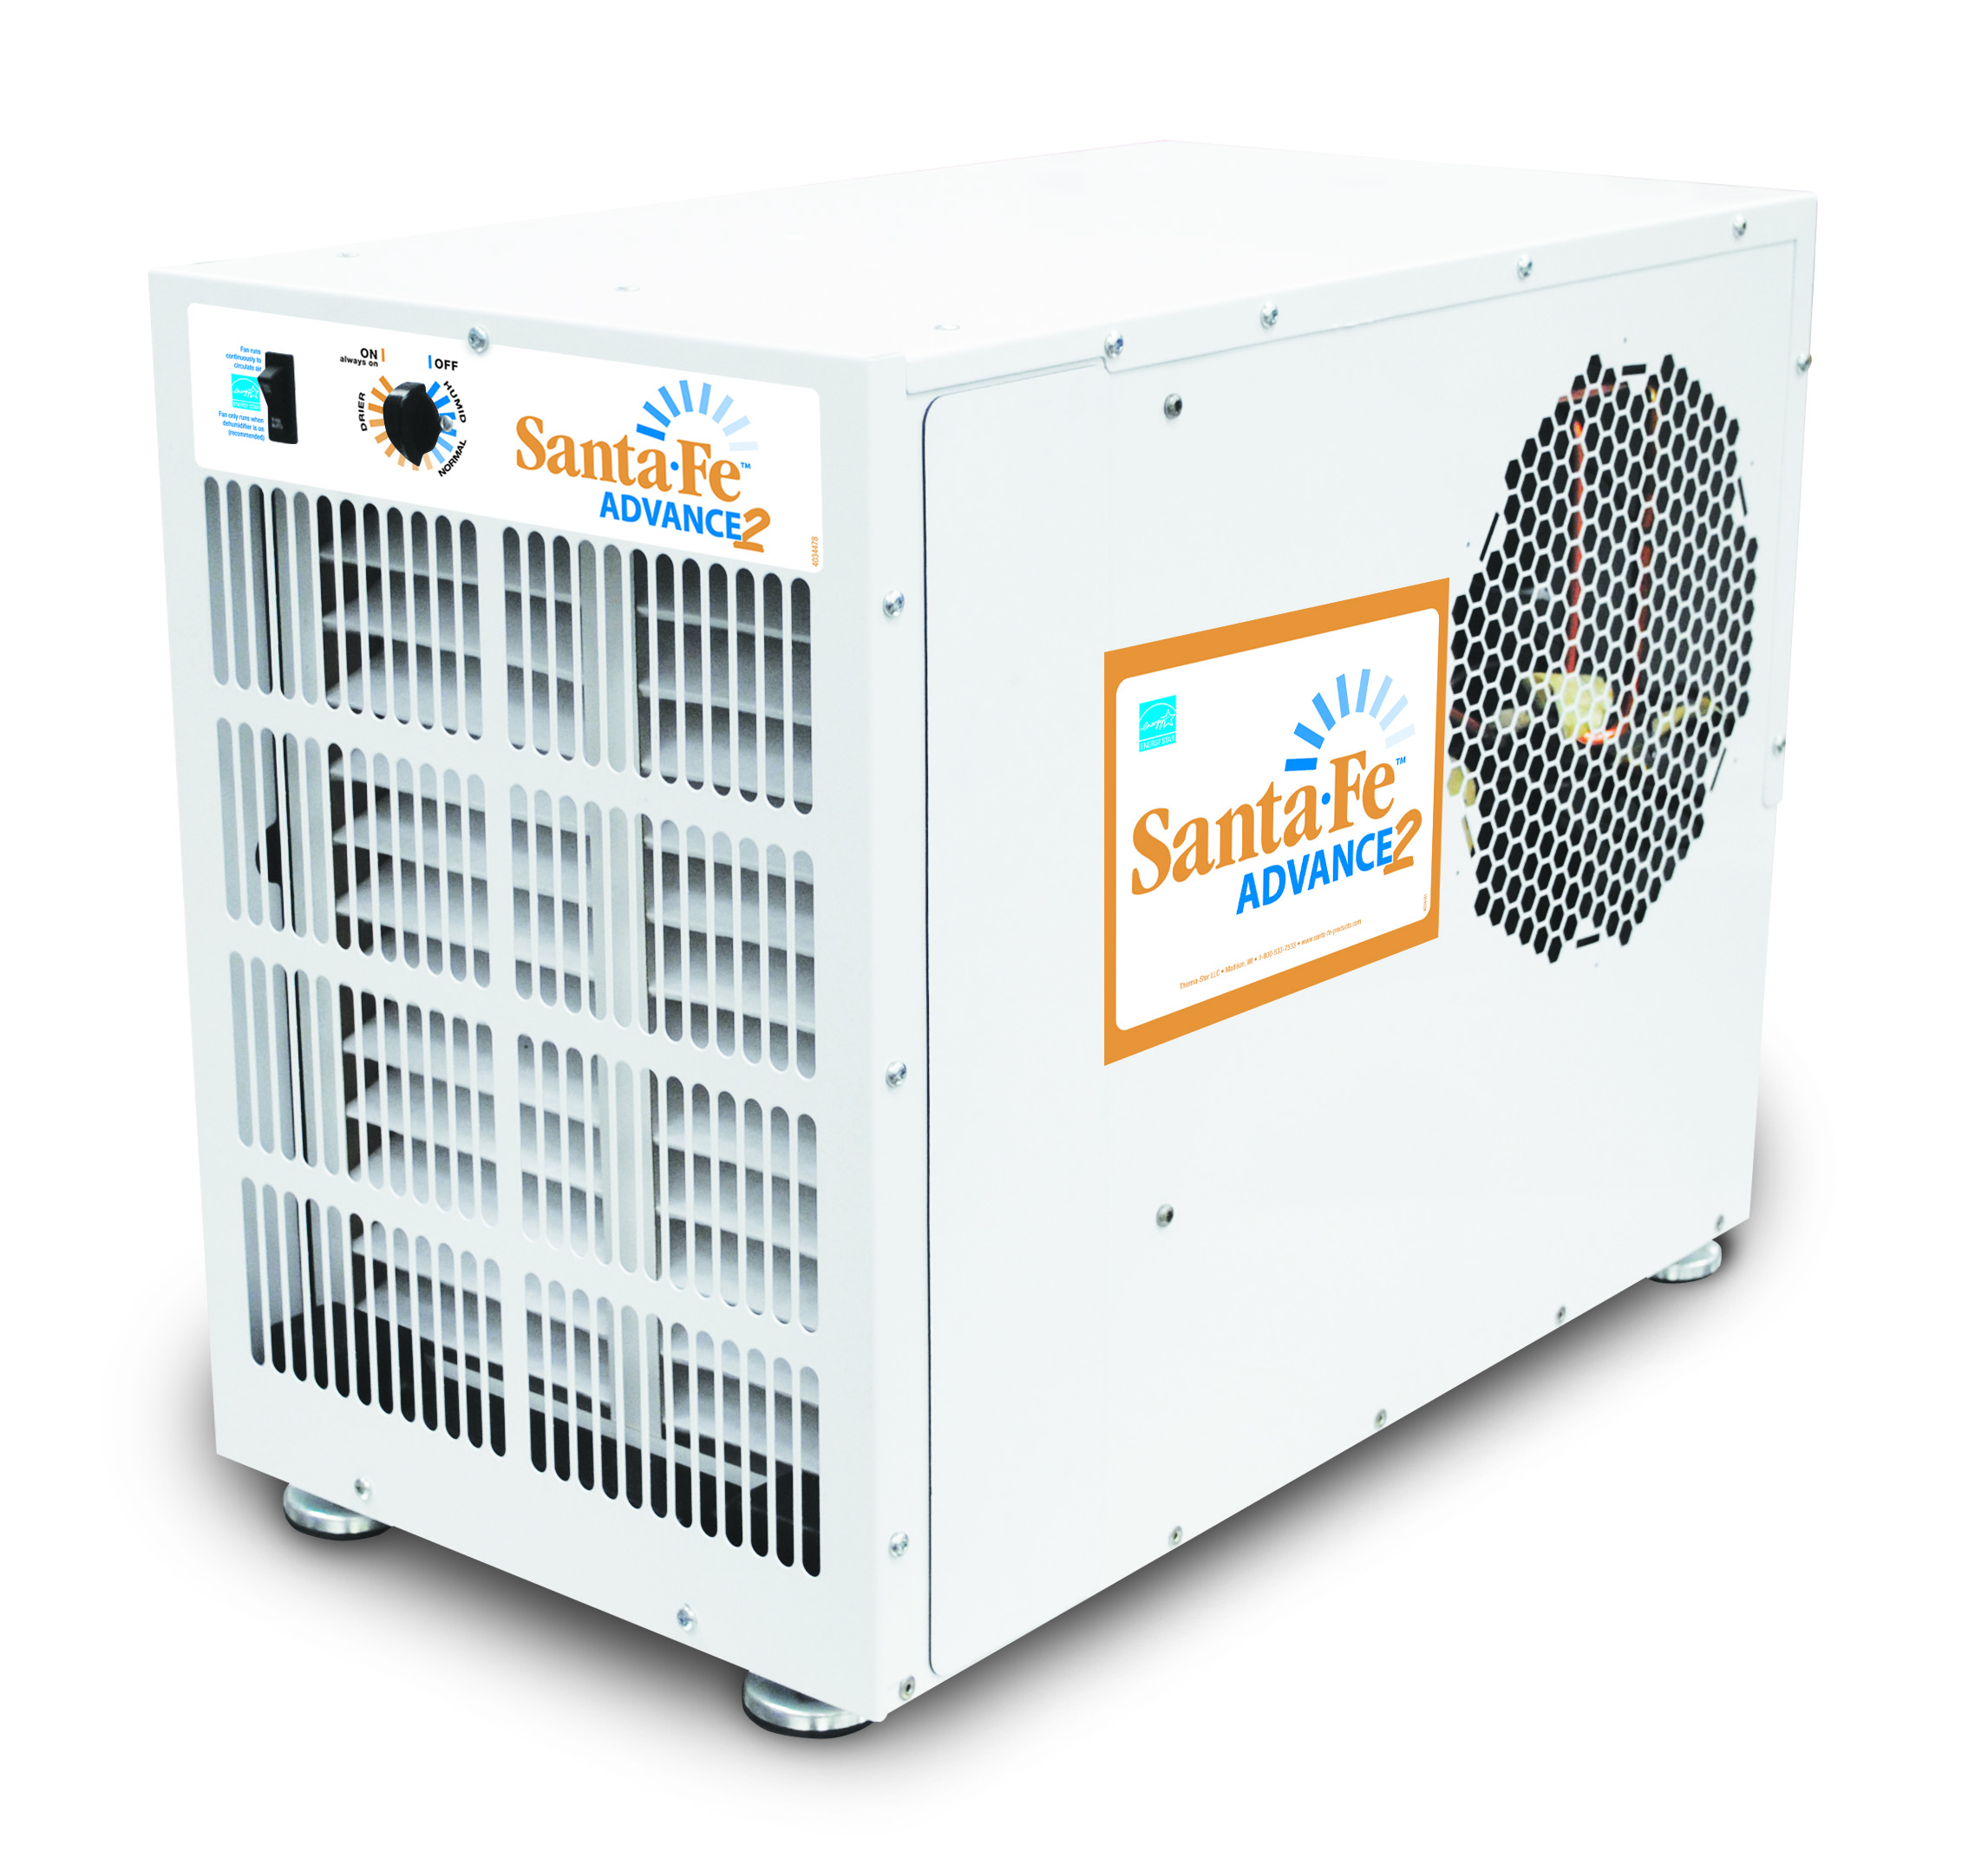 We are excited to introduce the new Santa Fe Advance2 dehumidifier  #AD681E